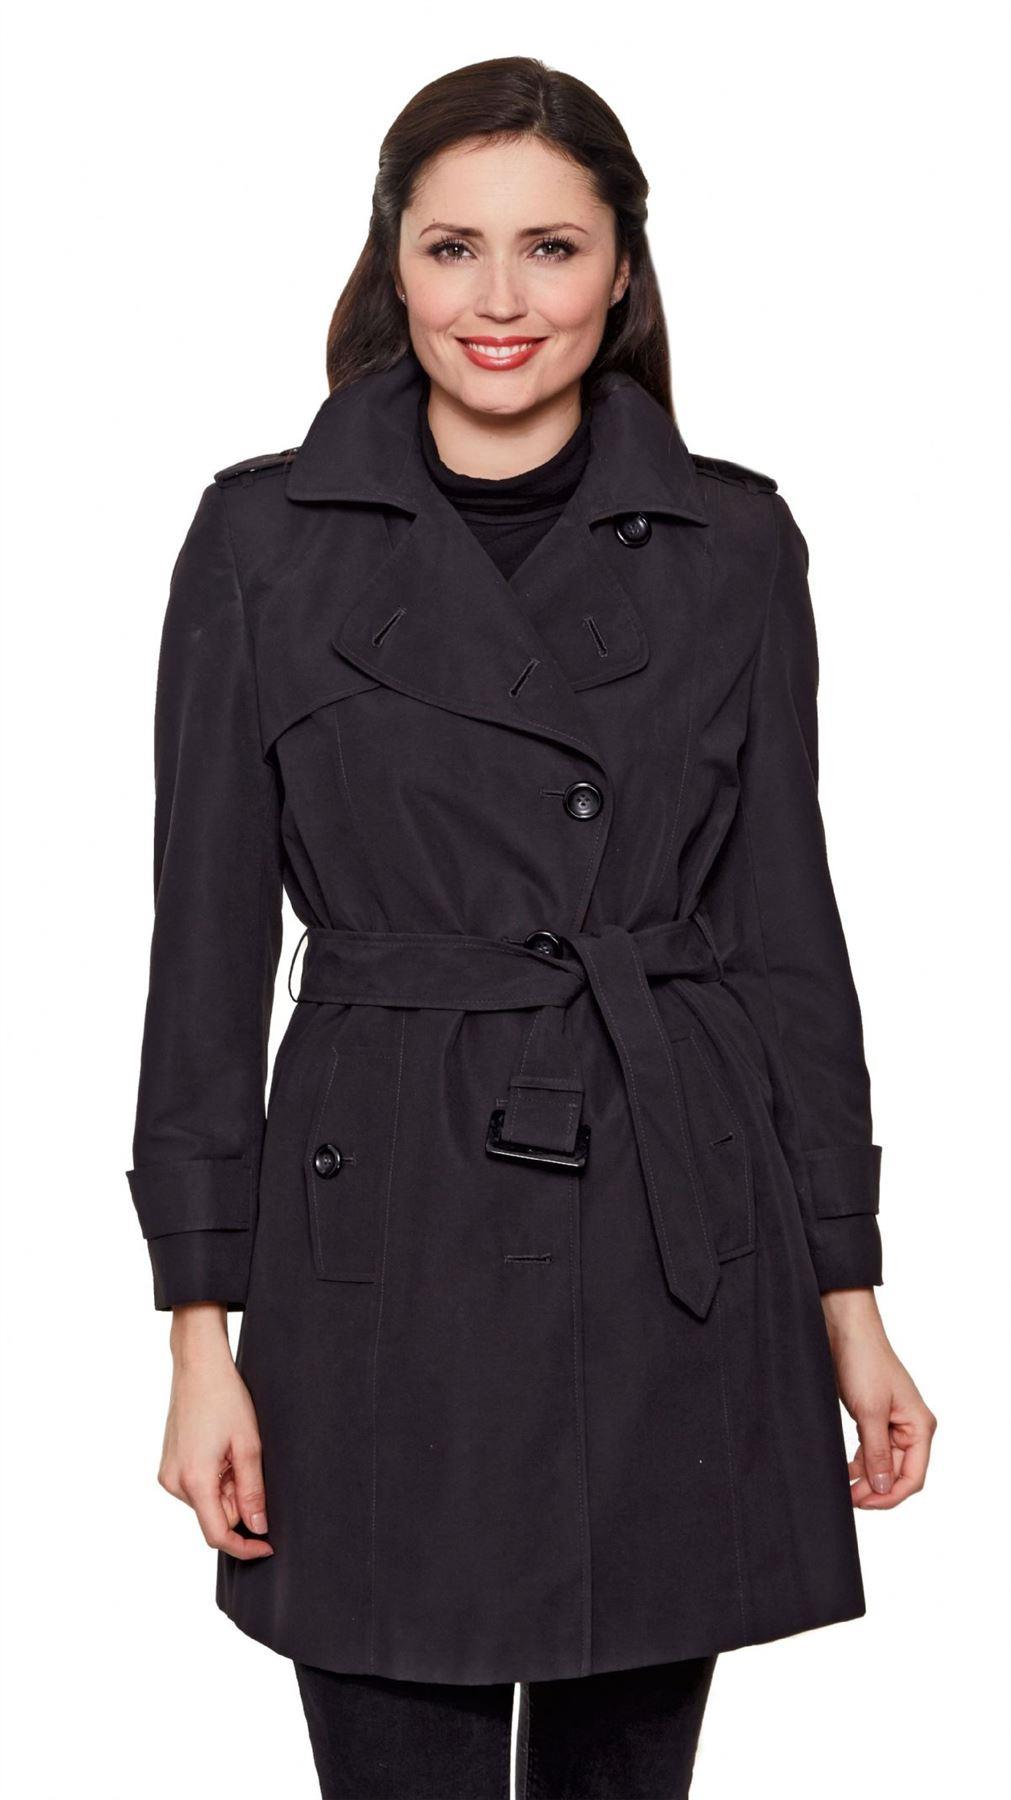 David Barry - Black Womens Short Belted Trench Coat